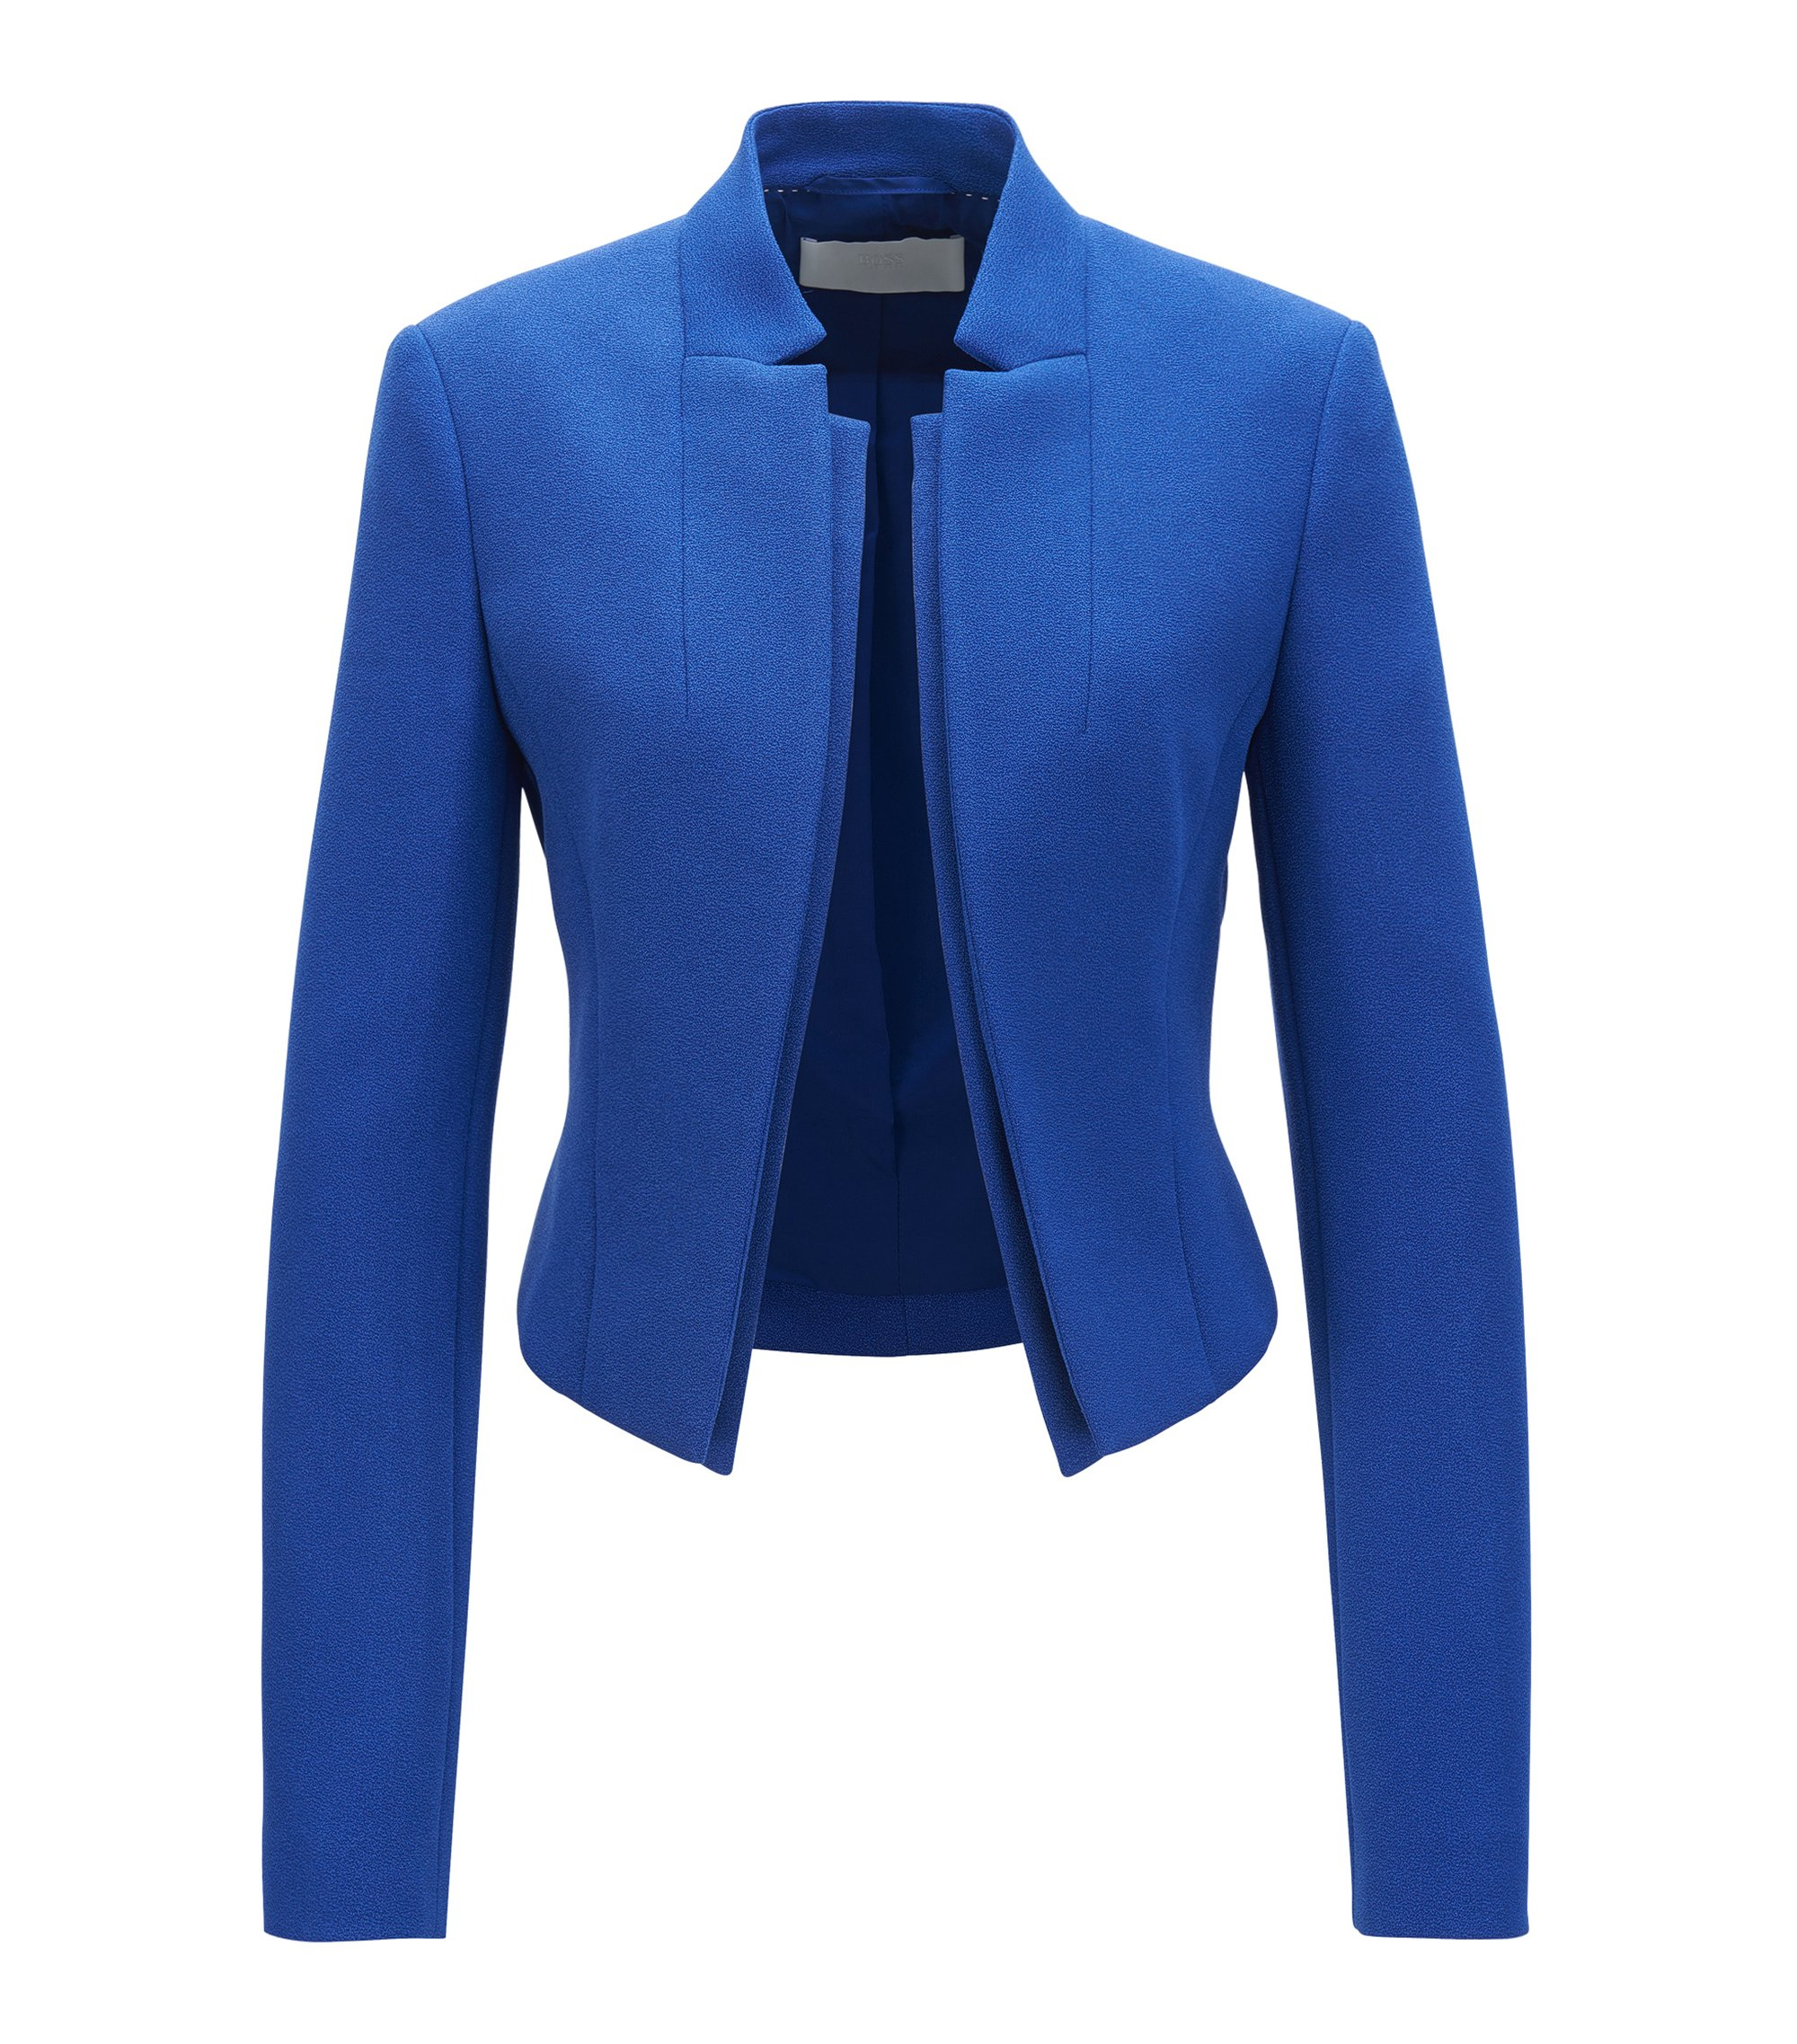 Regular-Fit Blazer aus Krepp mit doppellagigem Revers, Blau